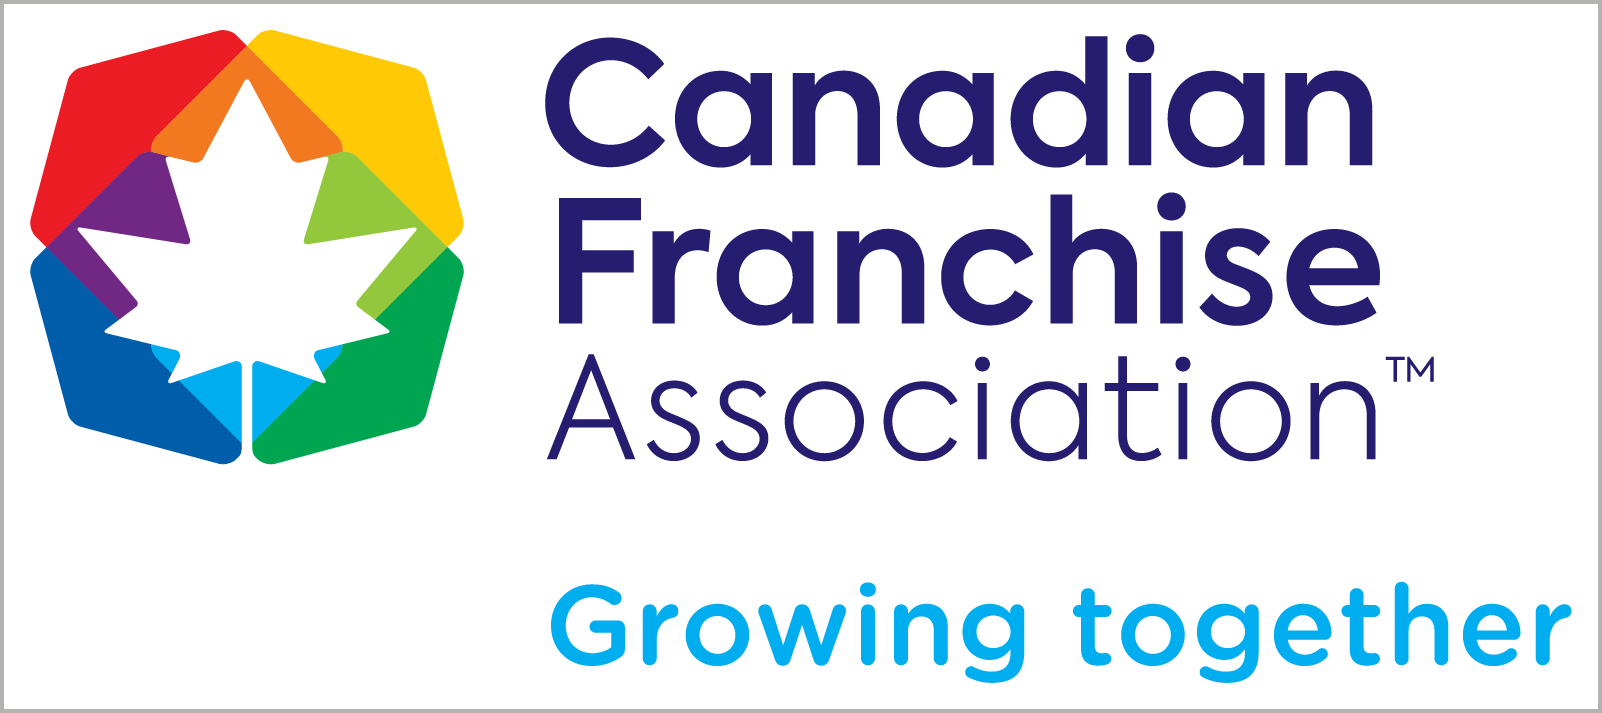 Canadian Franchise Association